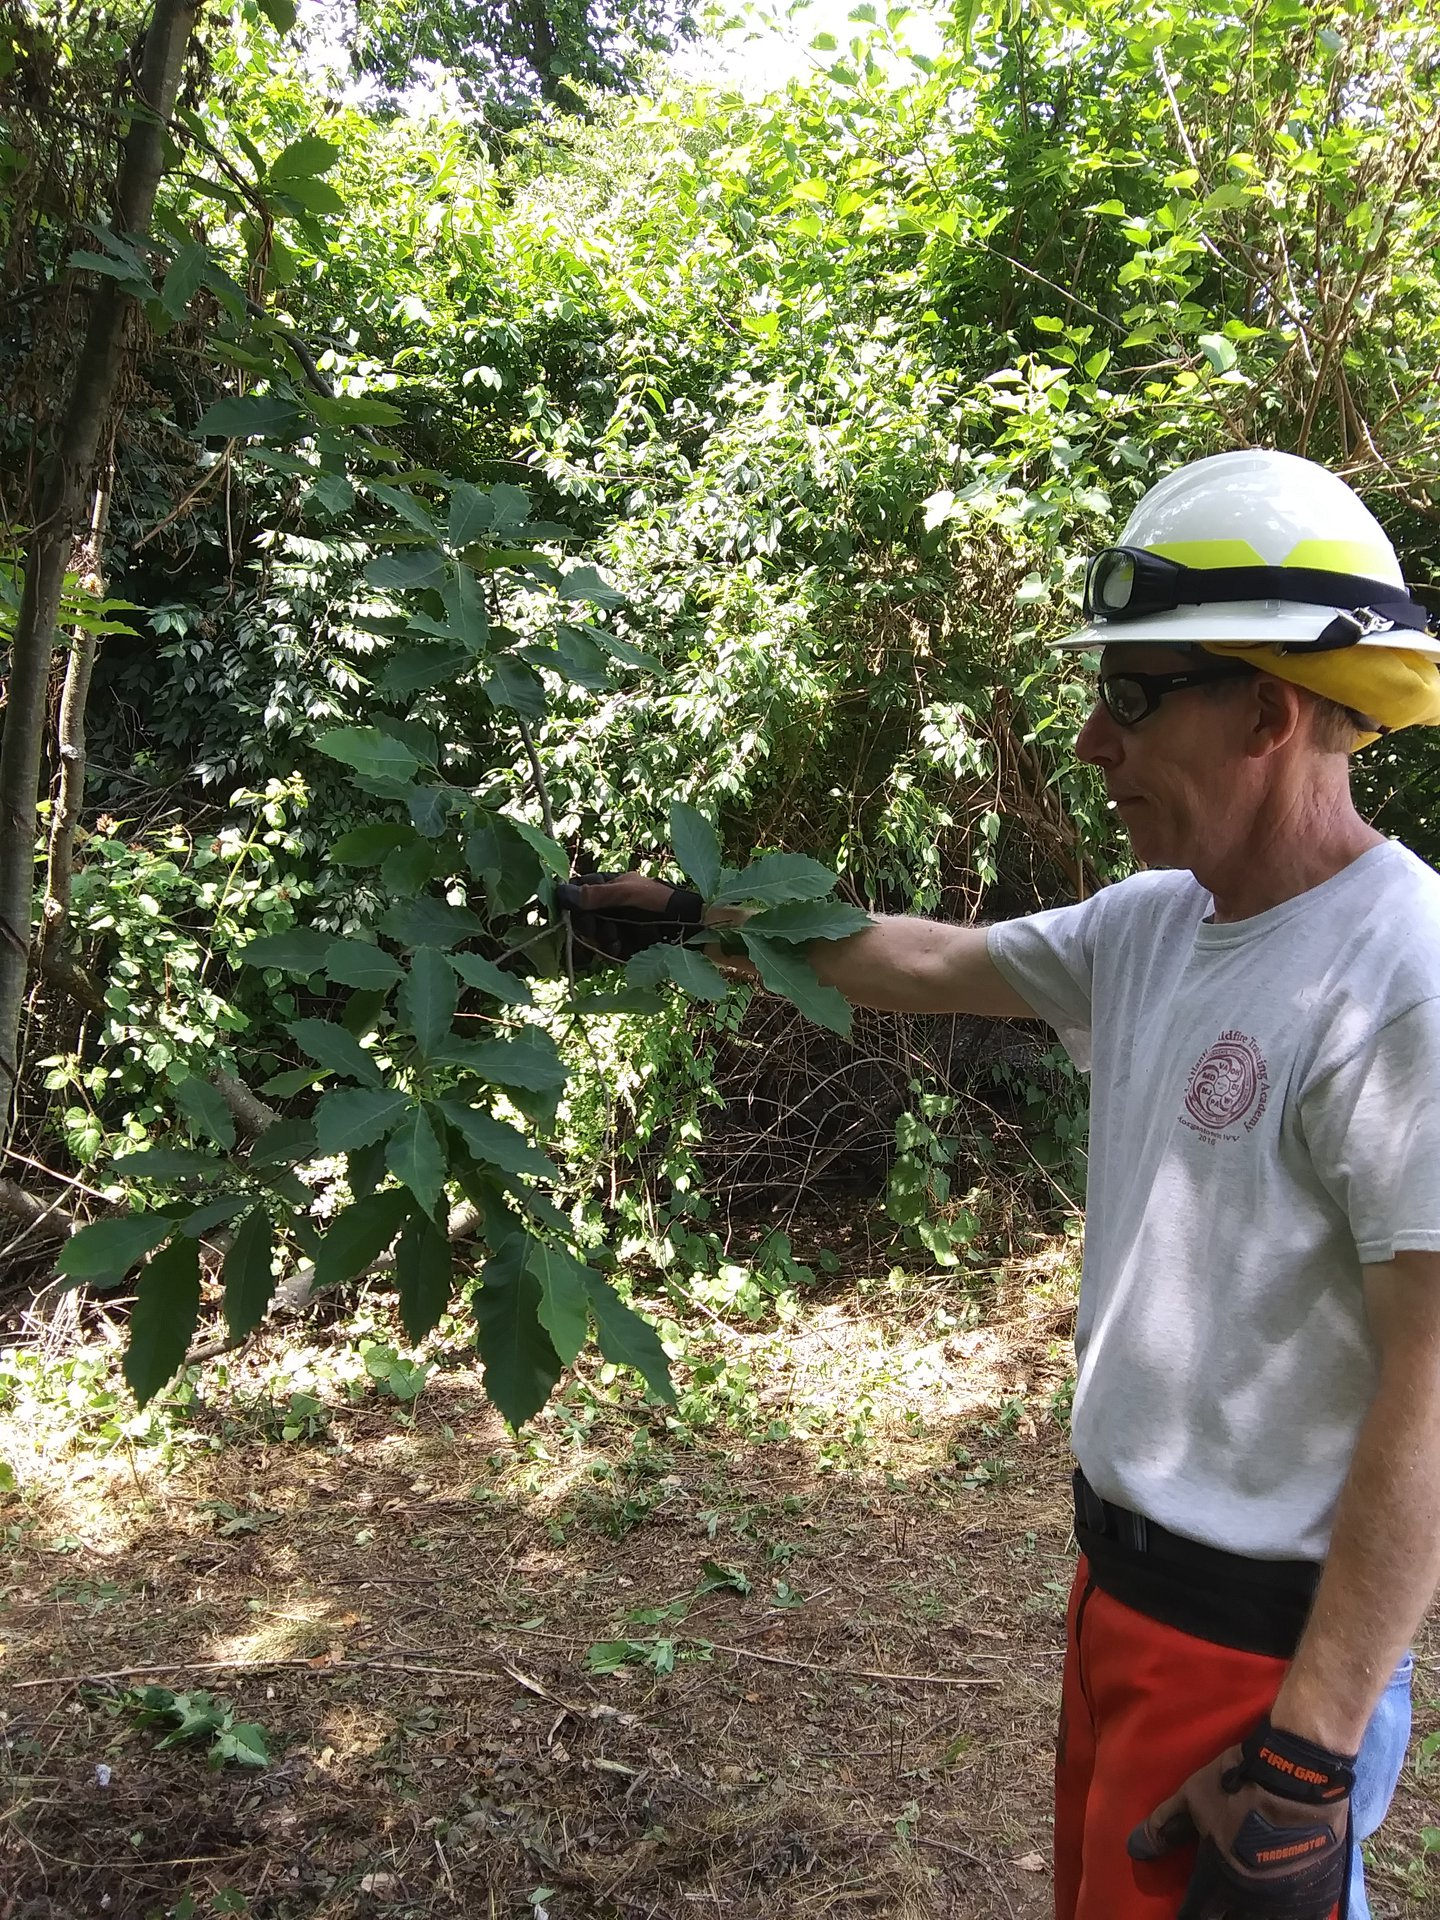 Volunteer Ric finds an American Chestnut